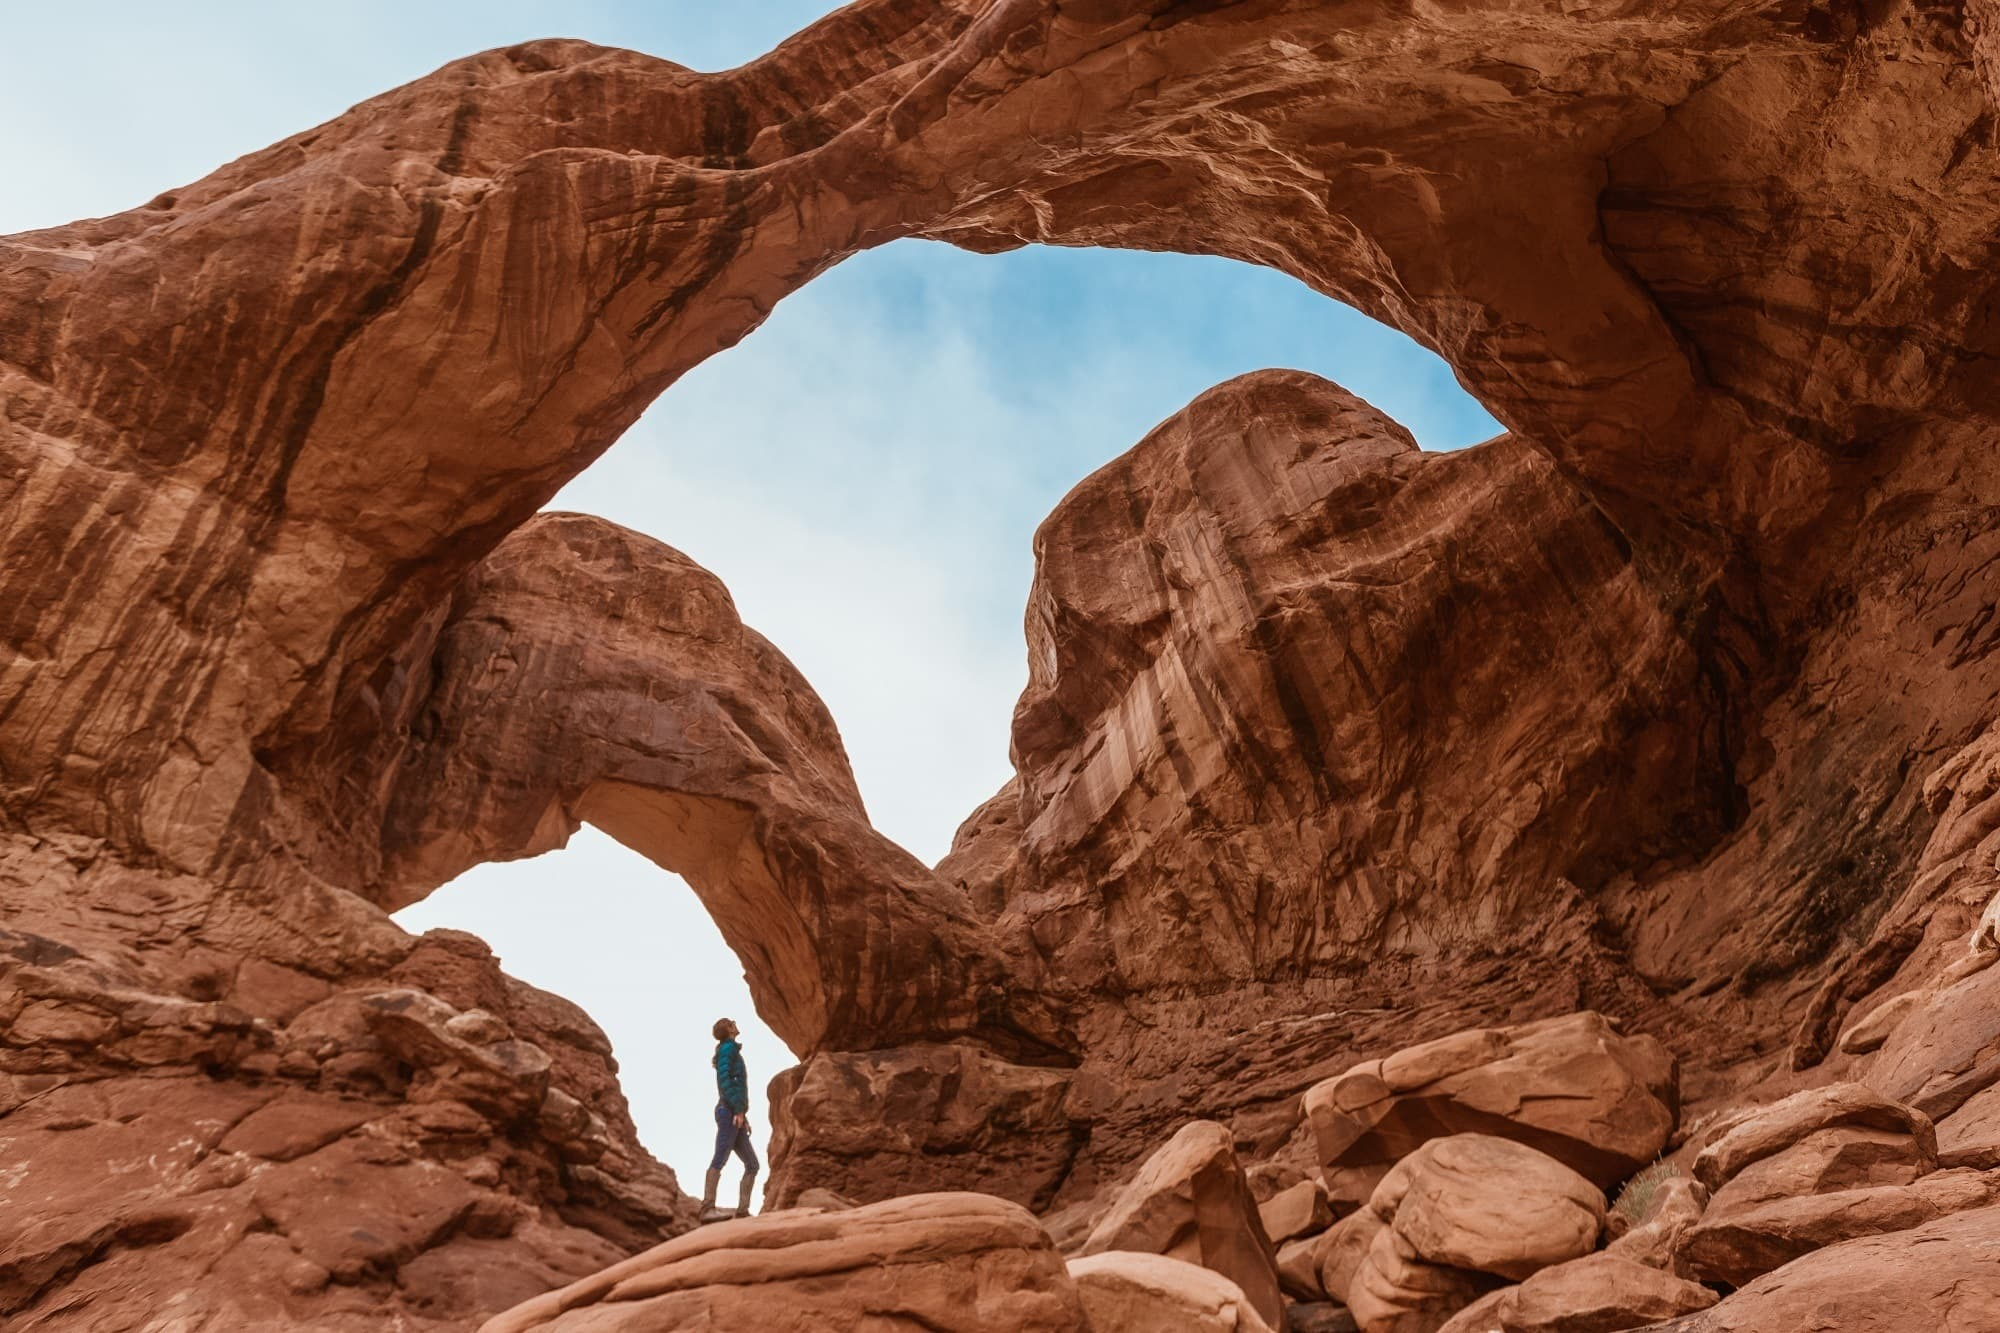 Want to improve your outdoor photography? Follow these user-friendly tips for taking great hiking photos with advice on shooting in manual & composition.